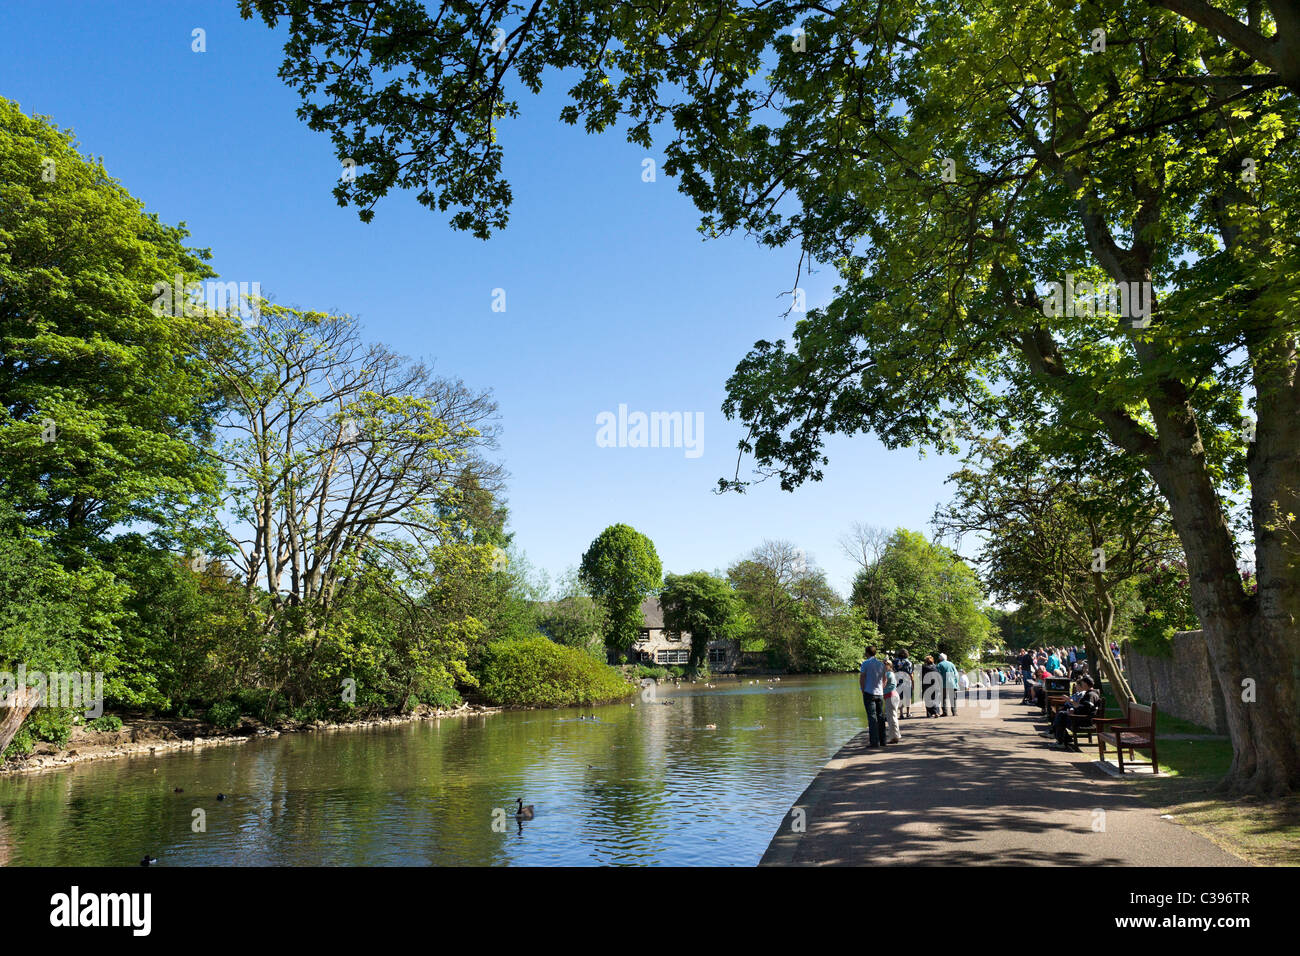 The banks of the River Wye in the village of Bakewell on the early May Bank Holiday weekend, The Peak District, - Stock Image